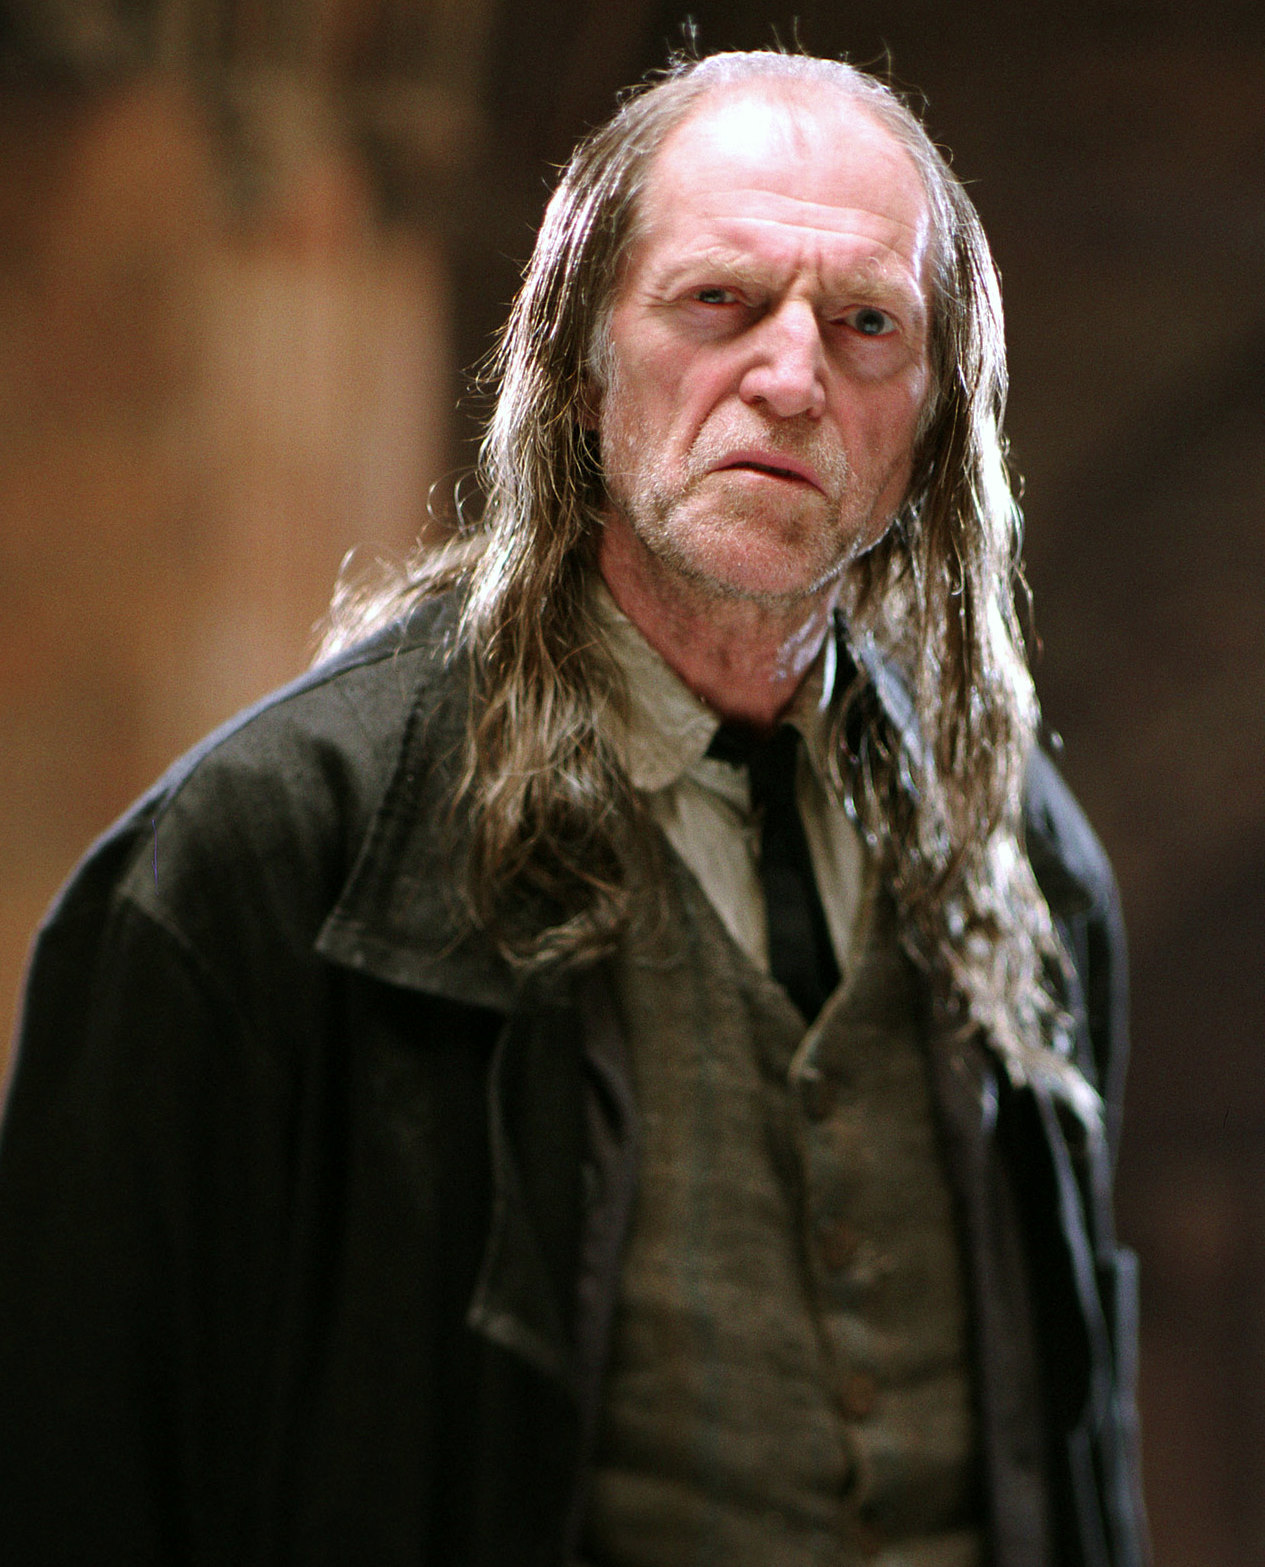 http://images.wikia.com/harrypotter/images/c/c9/Filch-GOF.jpg